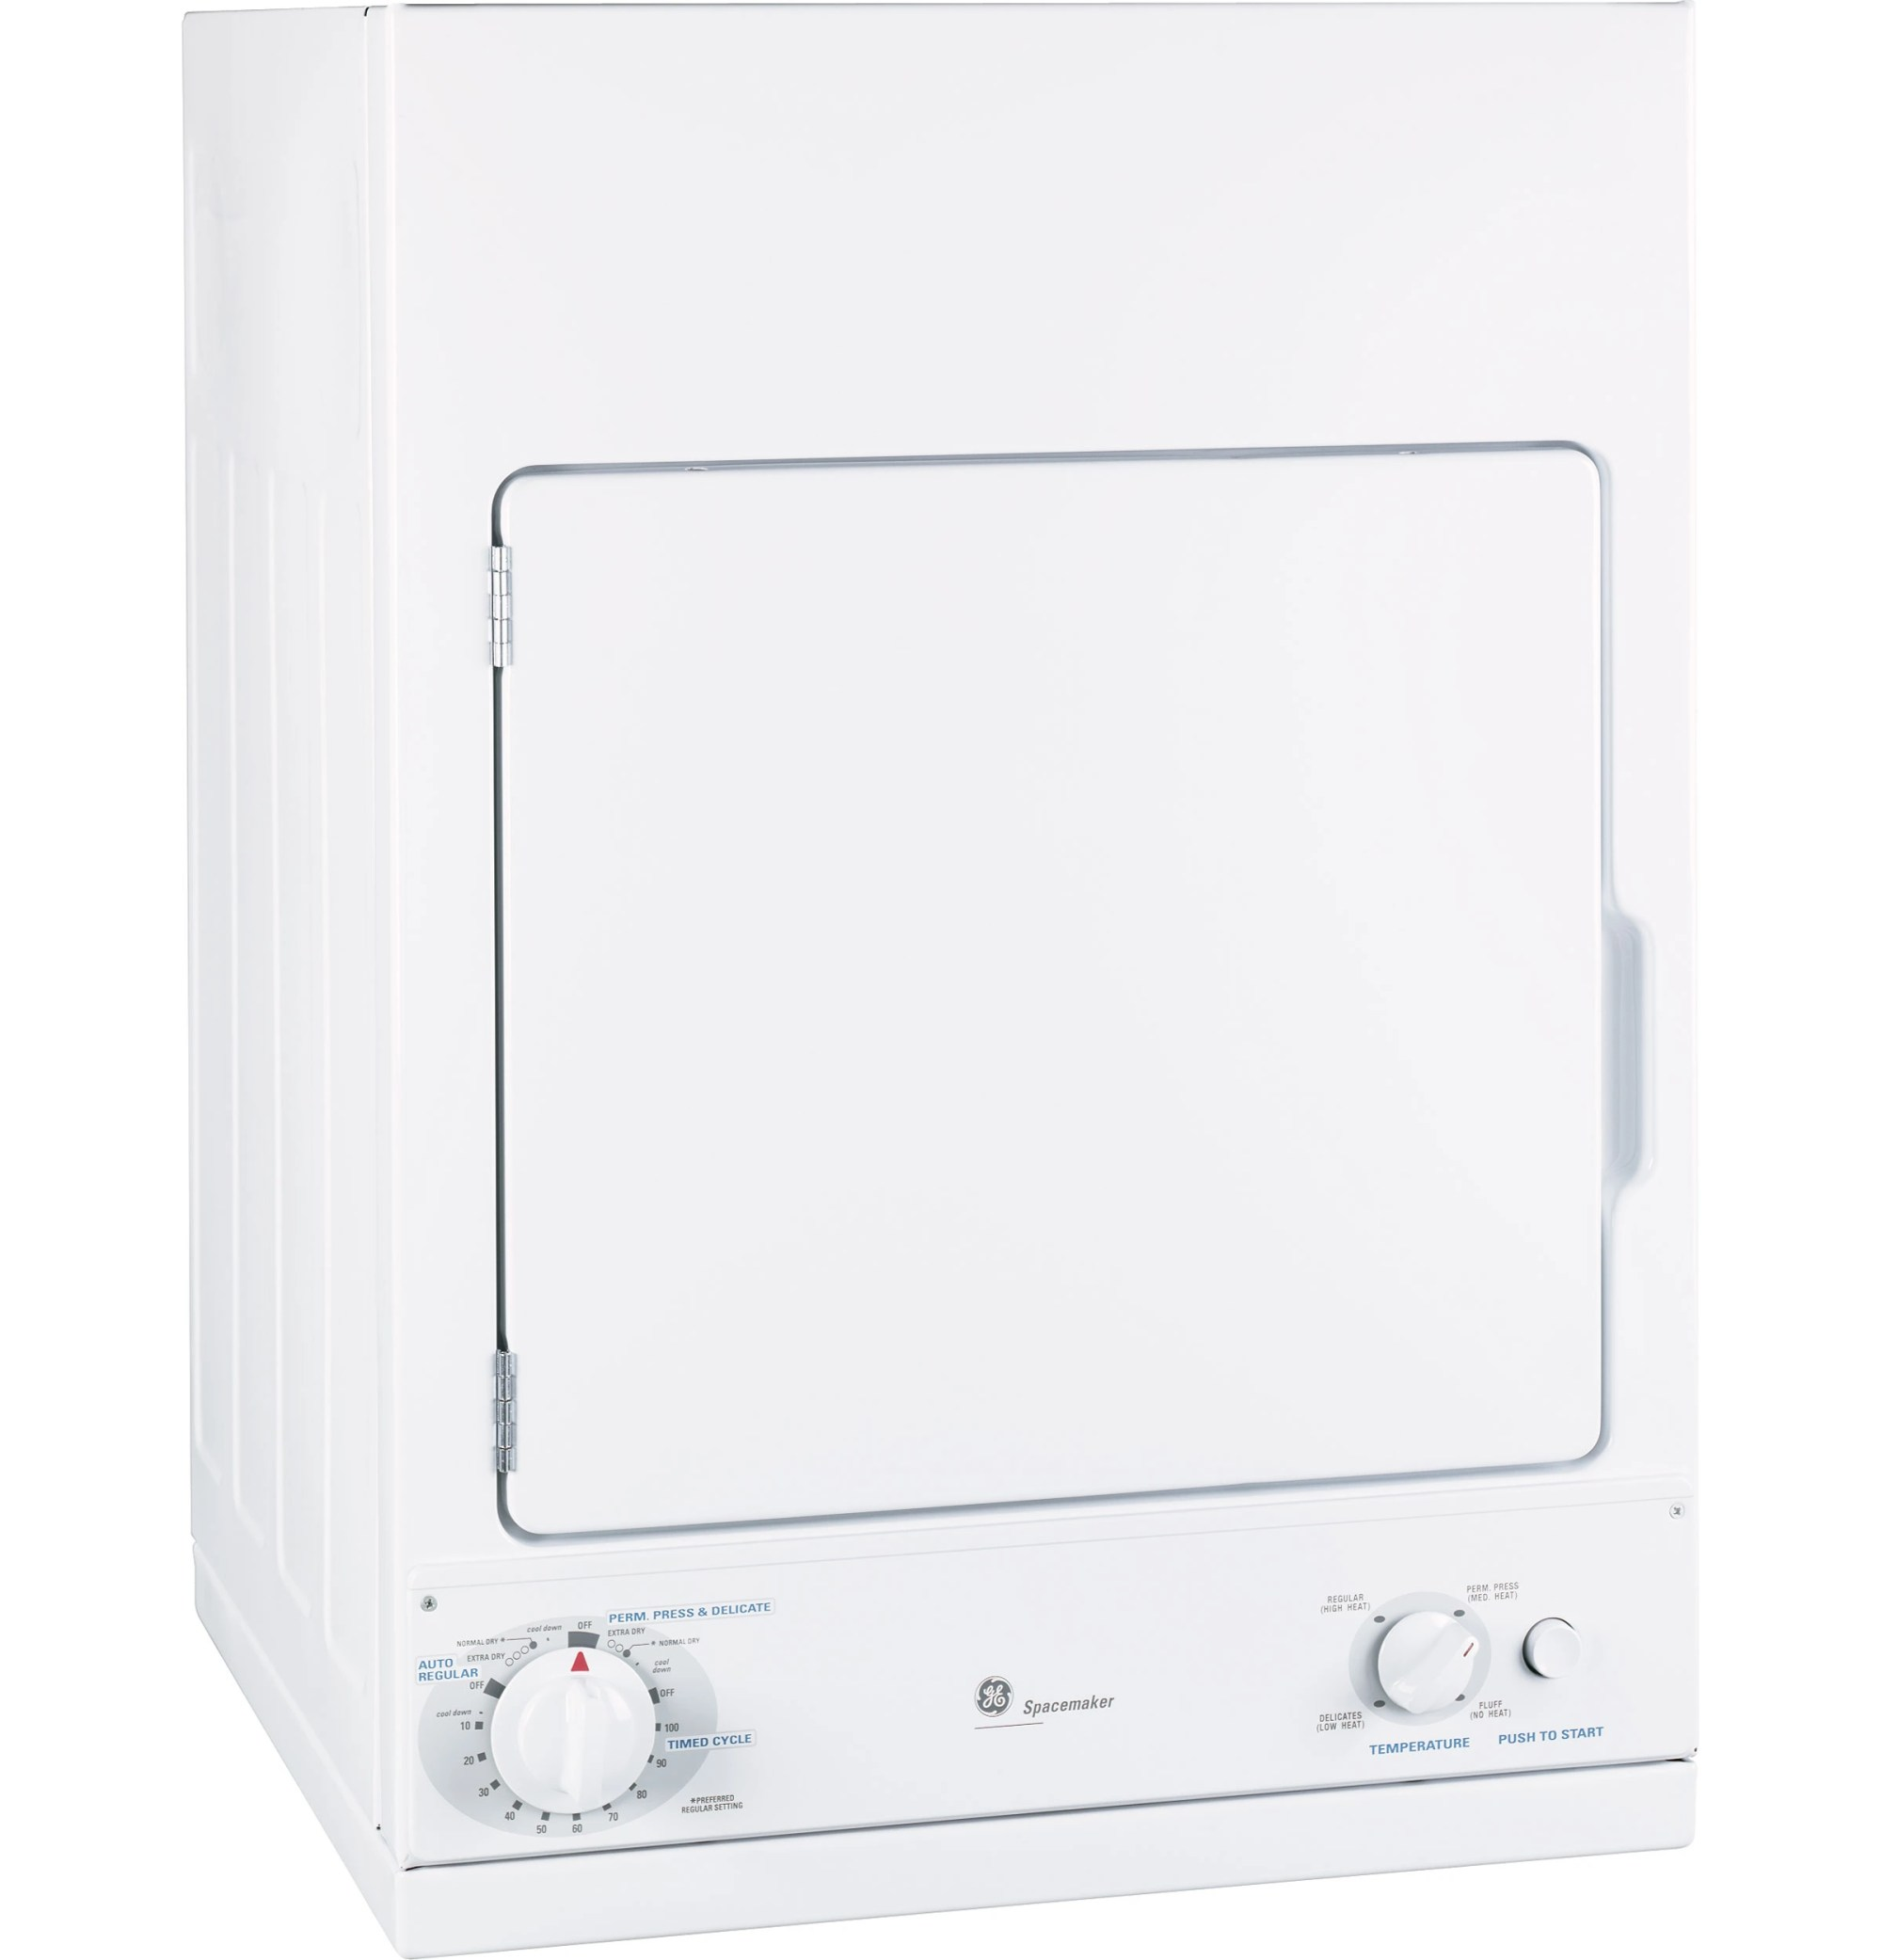 hight resolution of ge spacemaker front load electric dryer white dsks433ebww